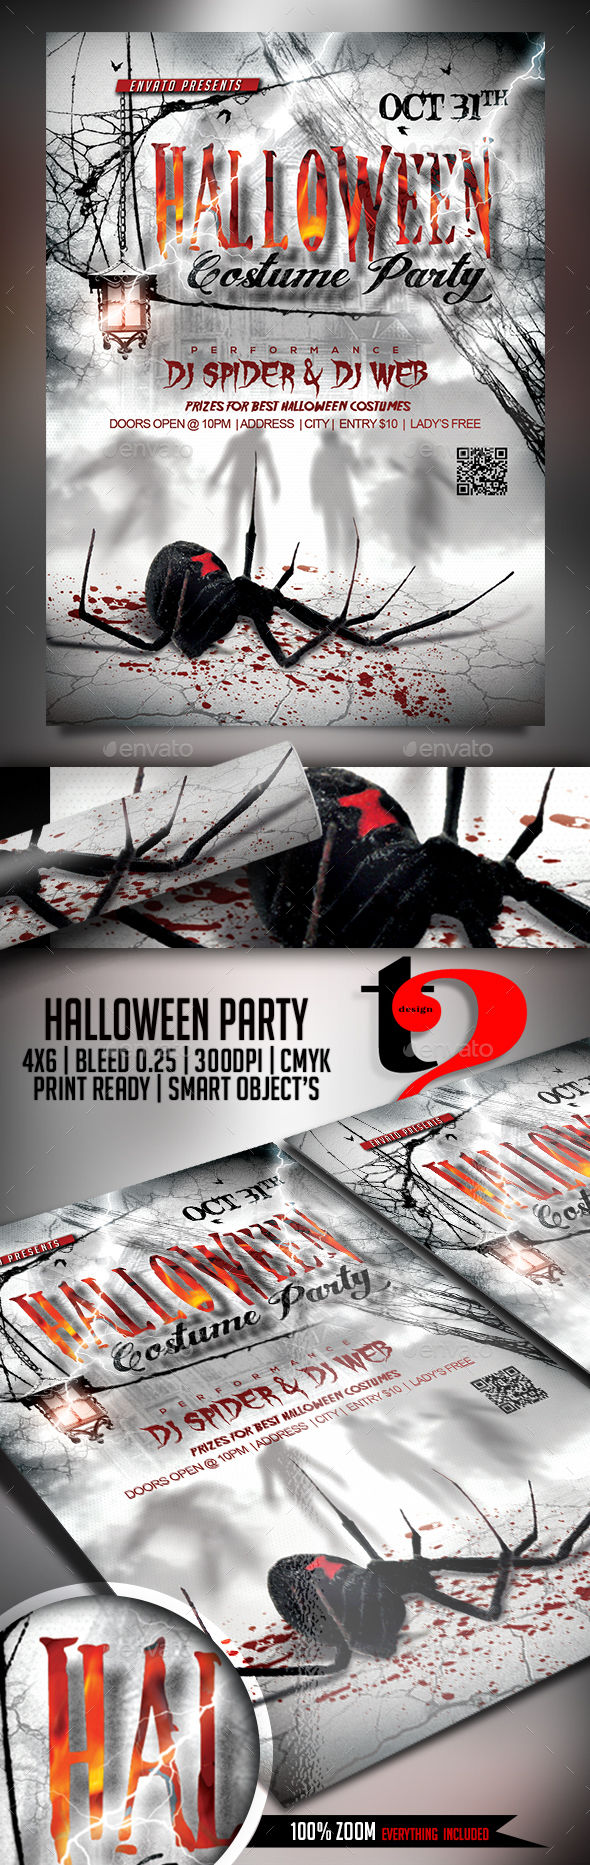 Halloween Flyer Template by Take2Design (Halloween party flyer)